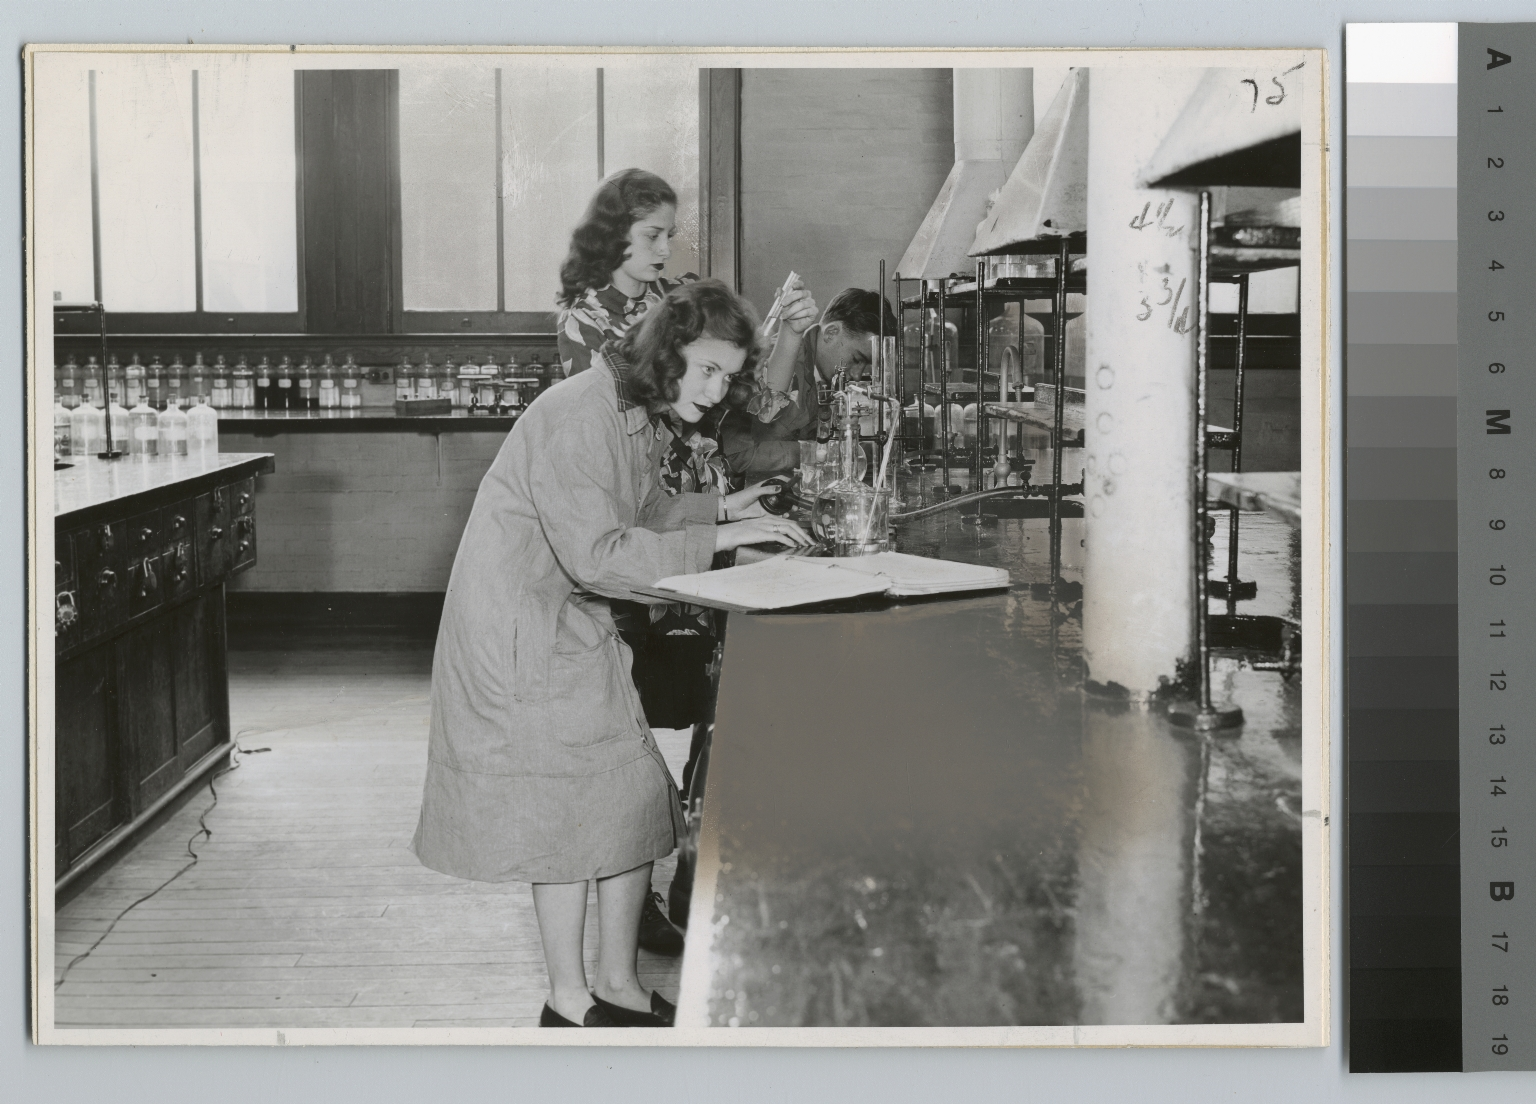 Academics, Chemistry, Rochester Institute of Technology students in a chemistry lab working on an experiment, [1945-1946]